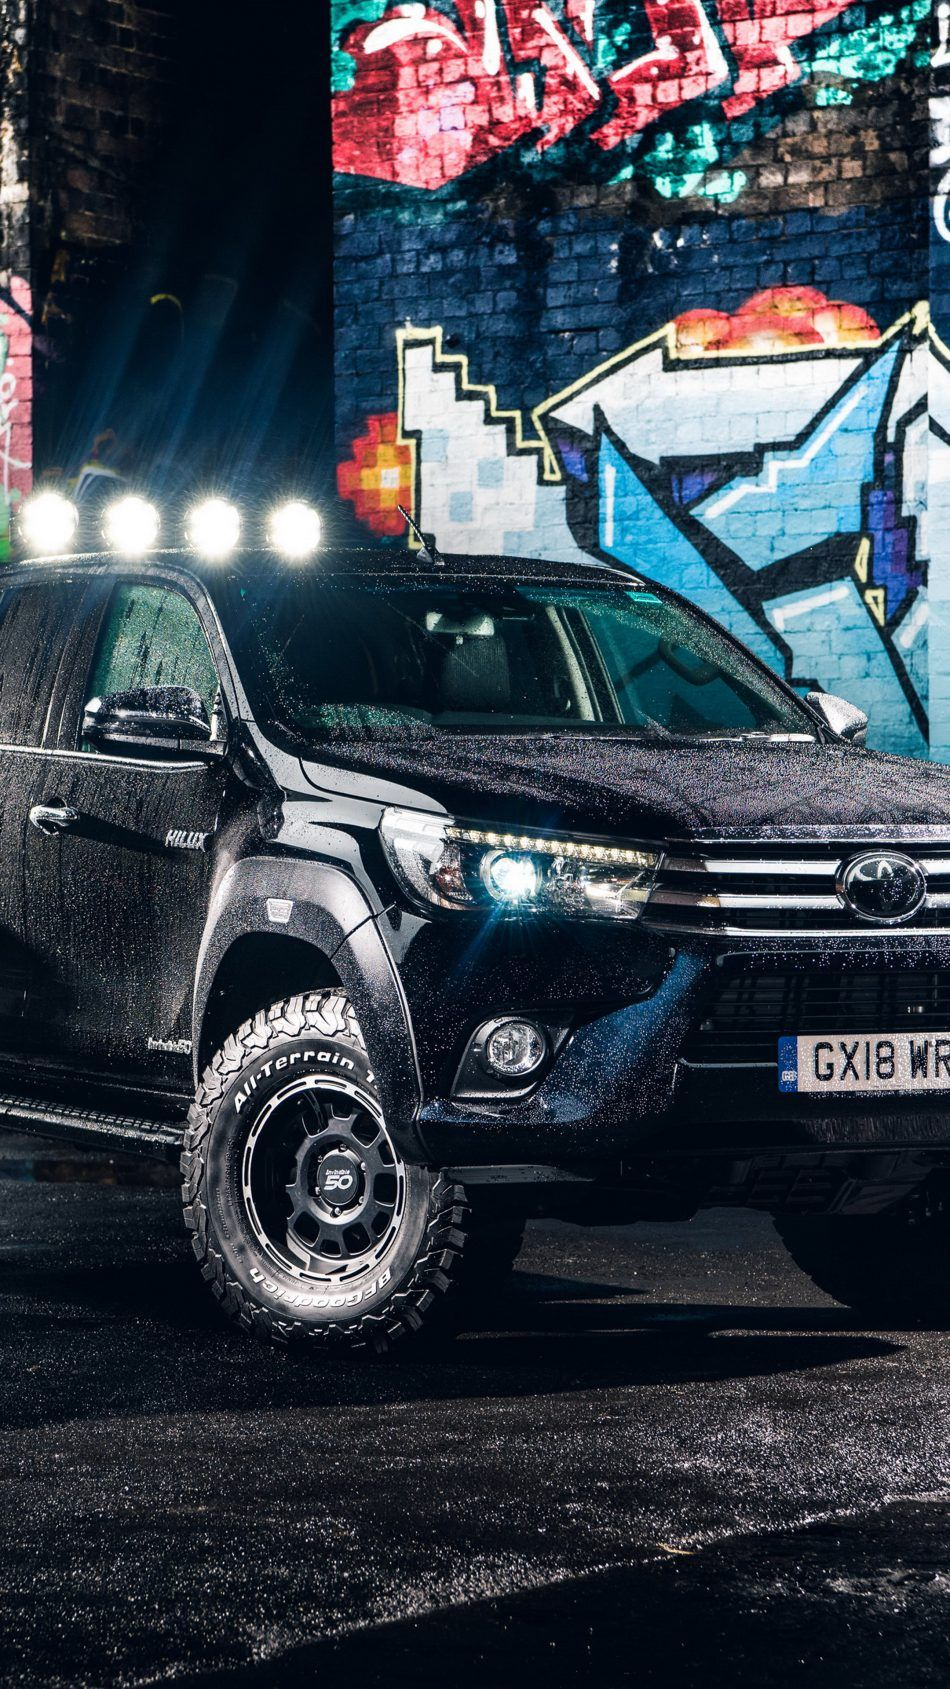 Toyota Hilux Arctic Truck 2018 Free 4K Ultra HD Mobile Wallpaper